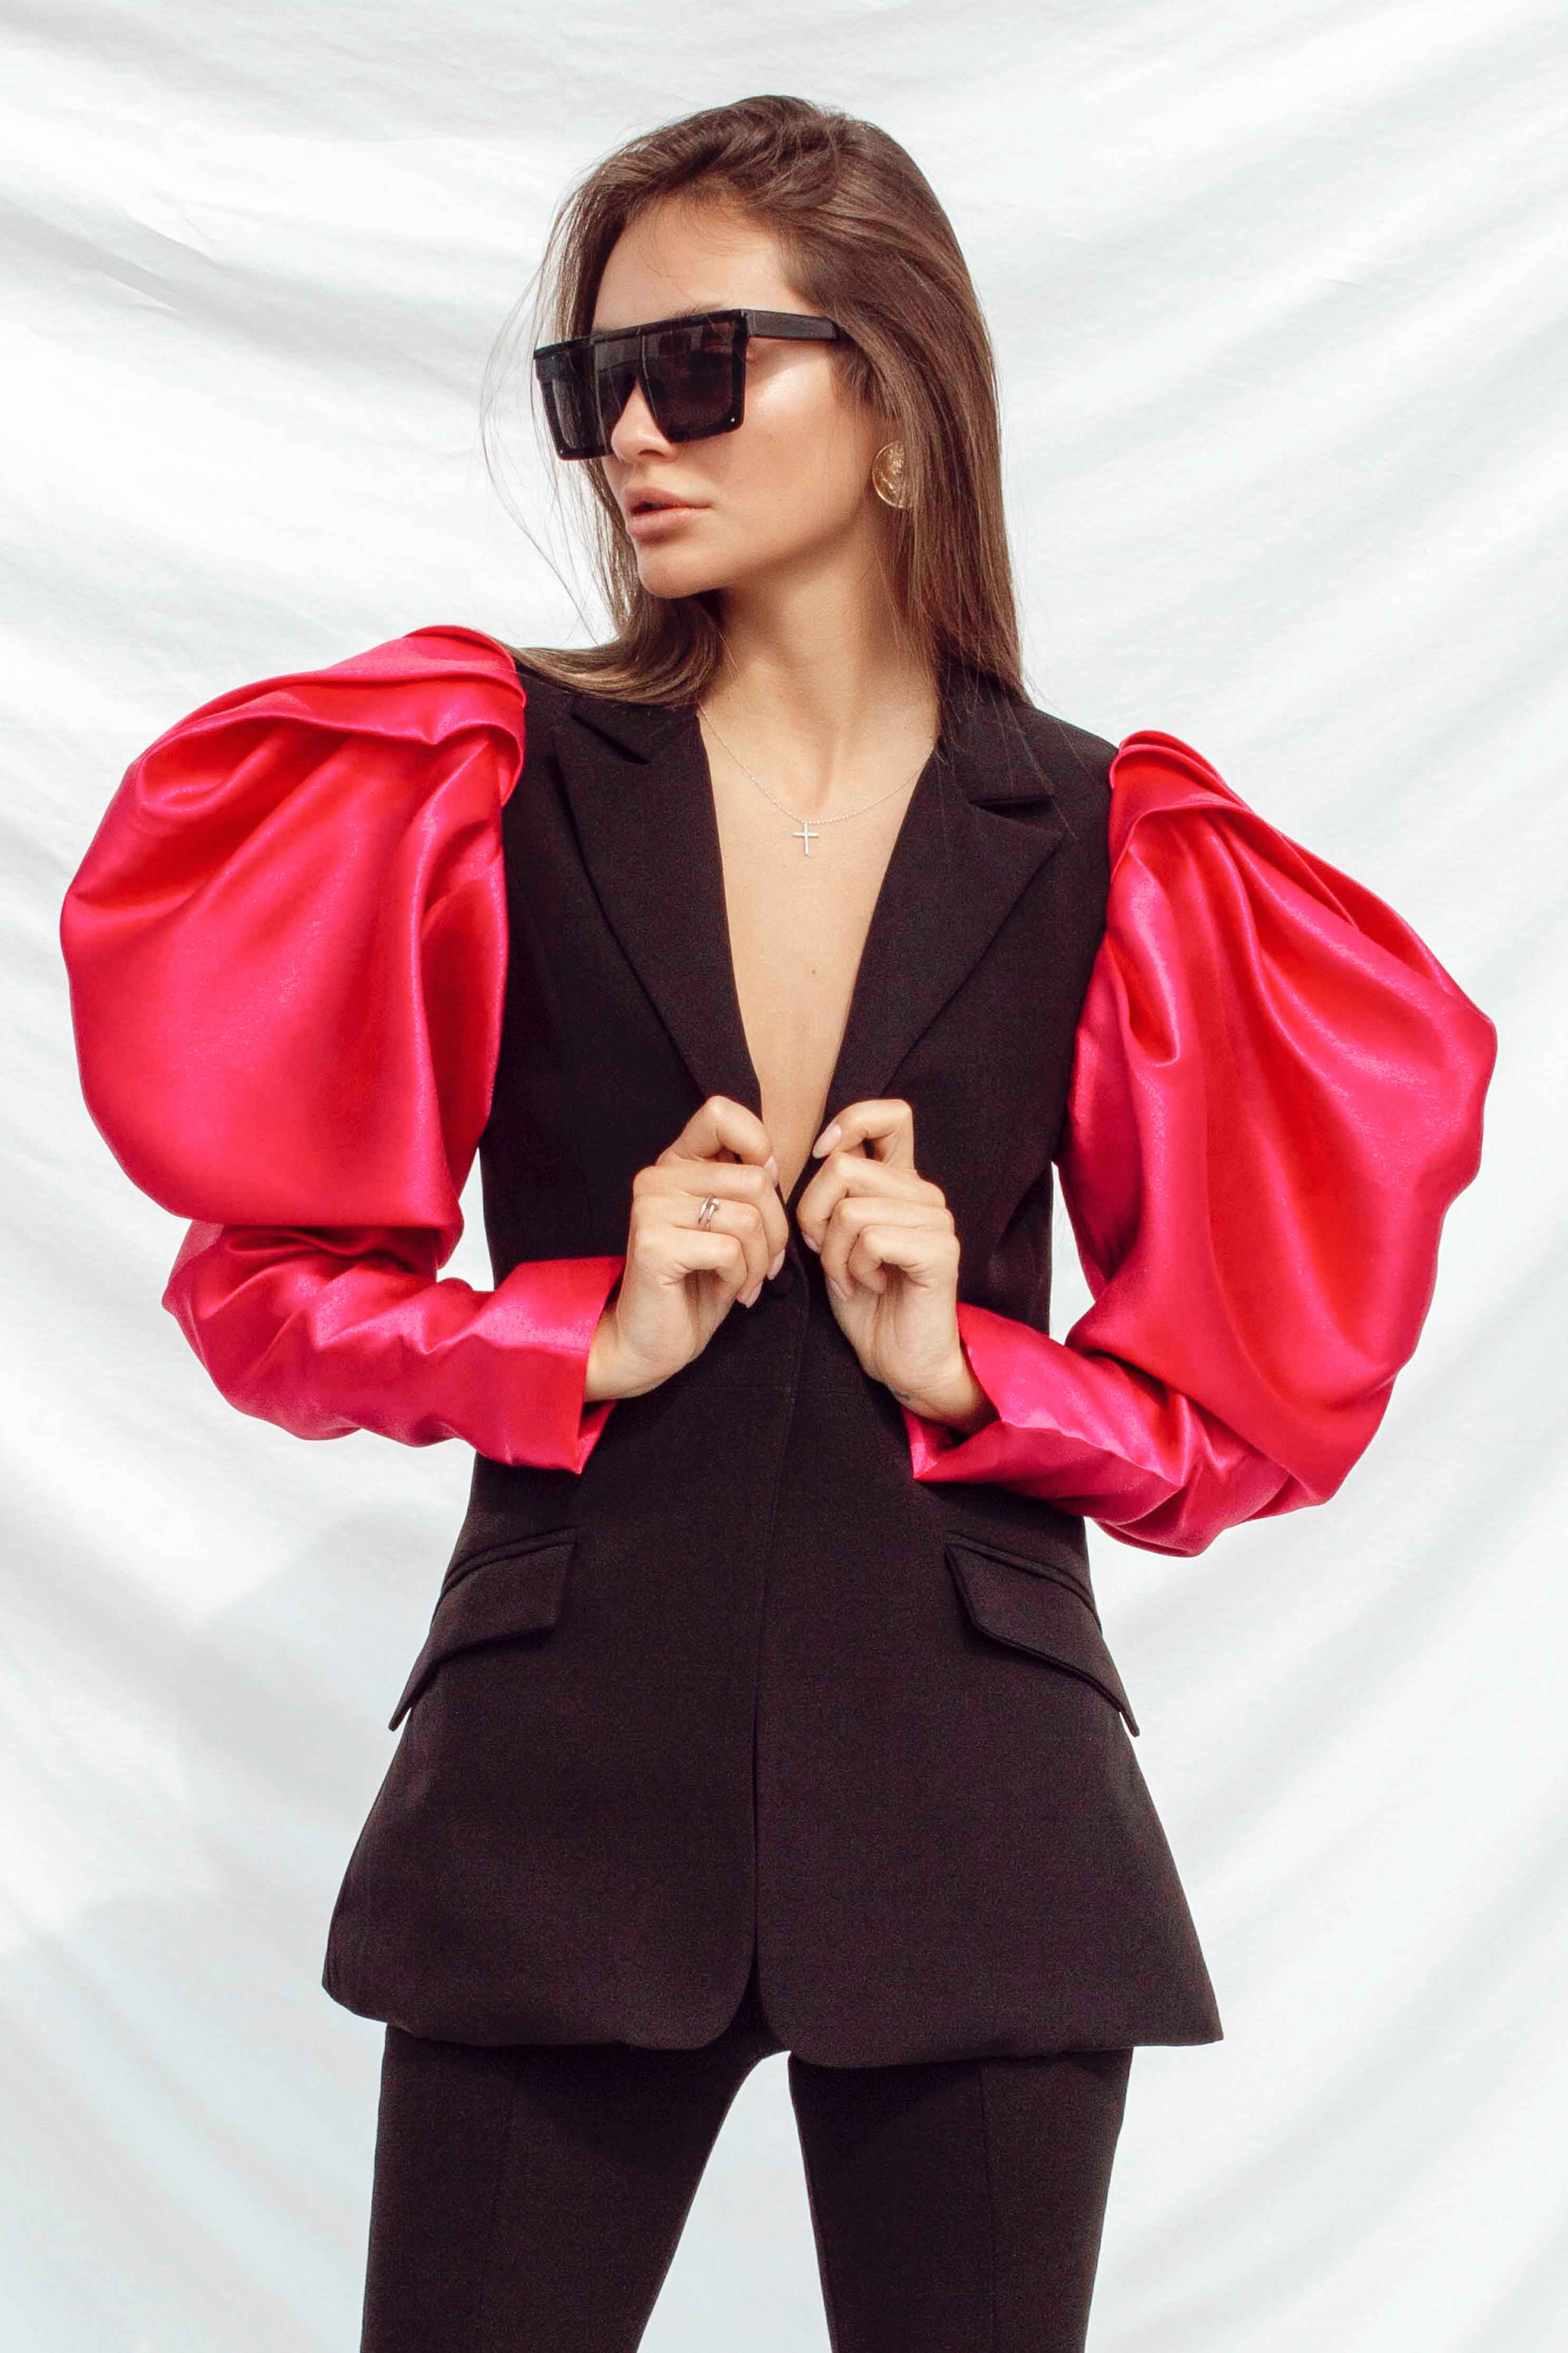 ROBERTA BLAZER | Women's Online Shopping | CHICLEFRIQUE